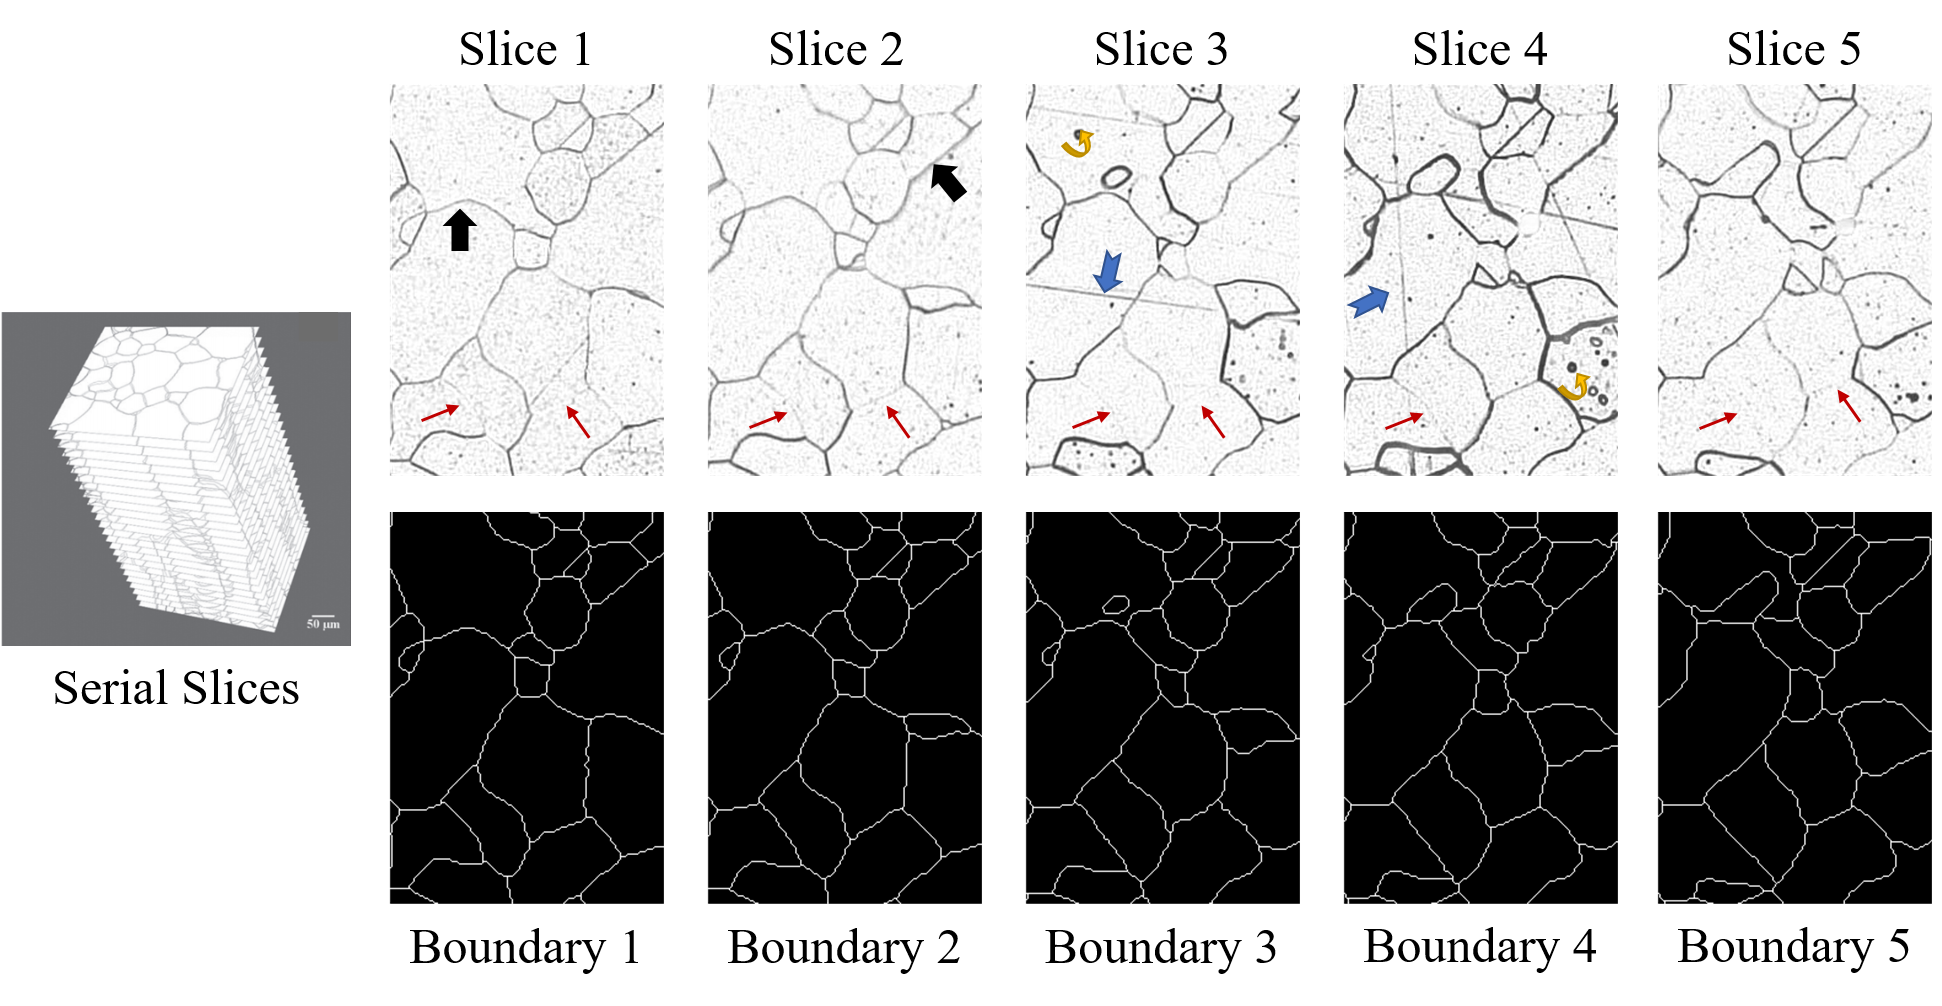 Microscopic serial slices of polycrystalline iron. The left is the demonstration of serial slices. The right top is five serial raw slices and the right bottom is its corresponding boundary results. For detailed visualization, we only add the scale bar in this Figure. All microscopic images share the same scale bar in this paper. (For interpretation of the references to color in this figure legend, the reader is referred to the web version of the article.)